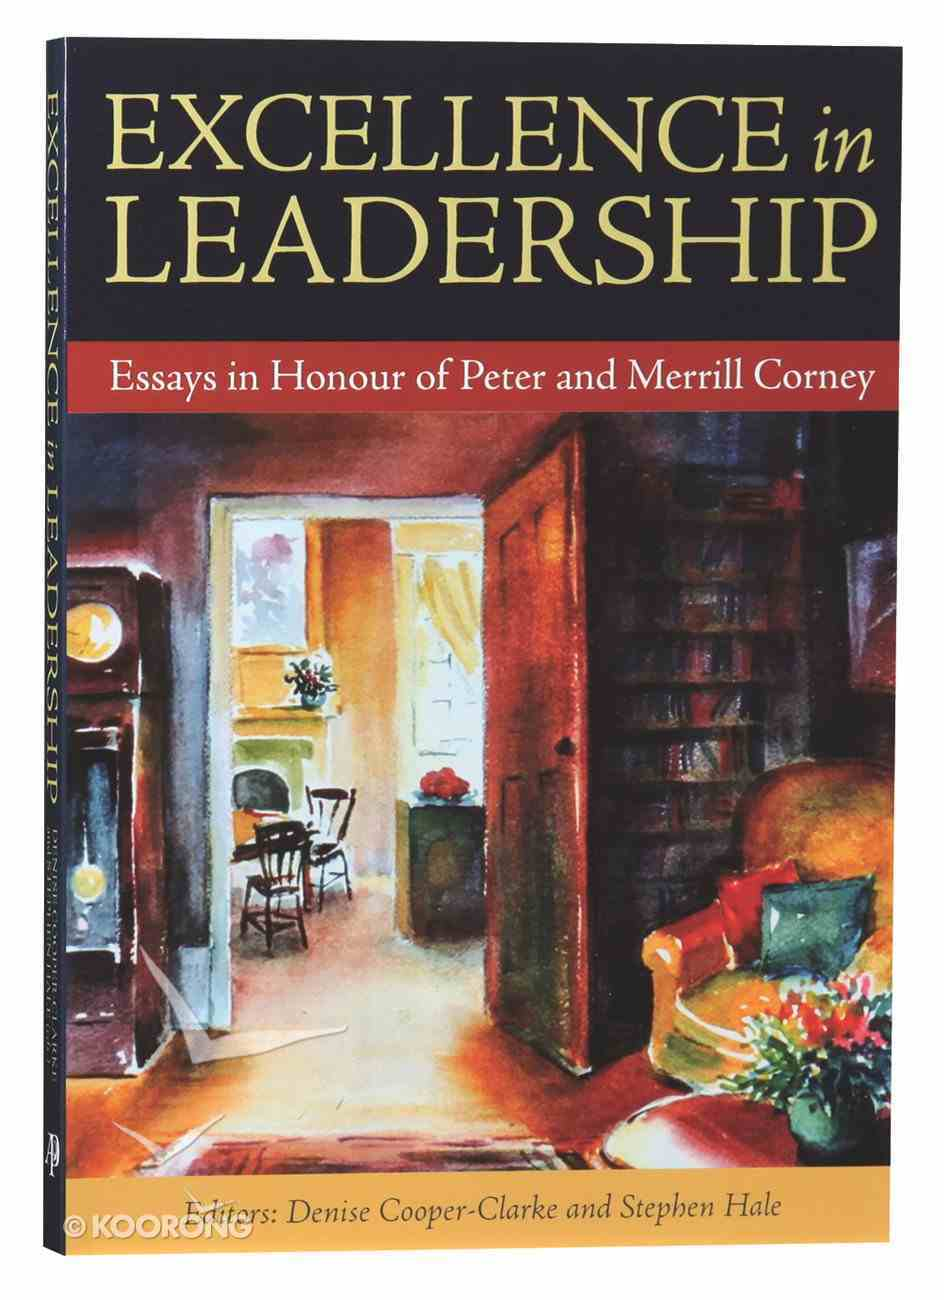 Excellence in Leadership: Essays in Honour of Peter and Merrill Corney Paperback